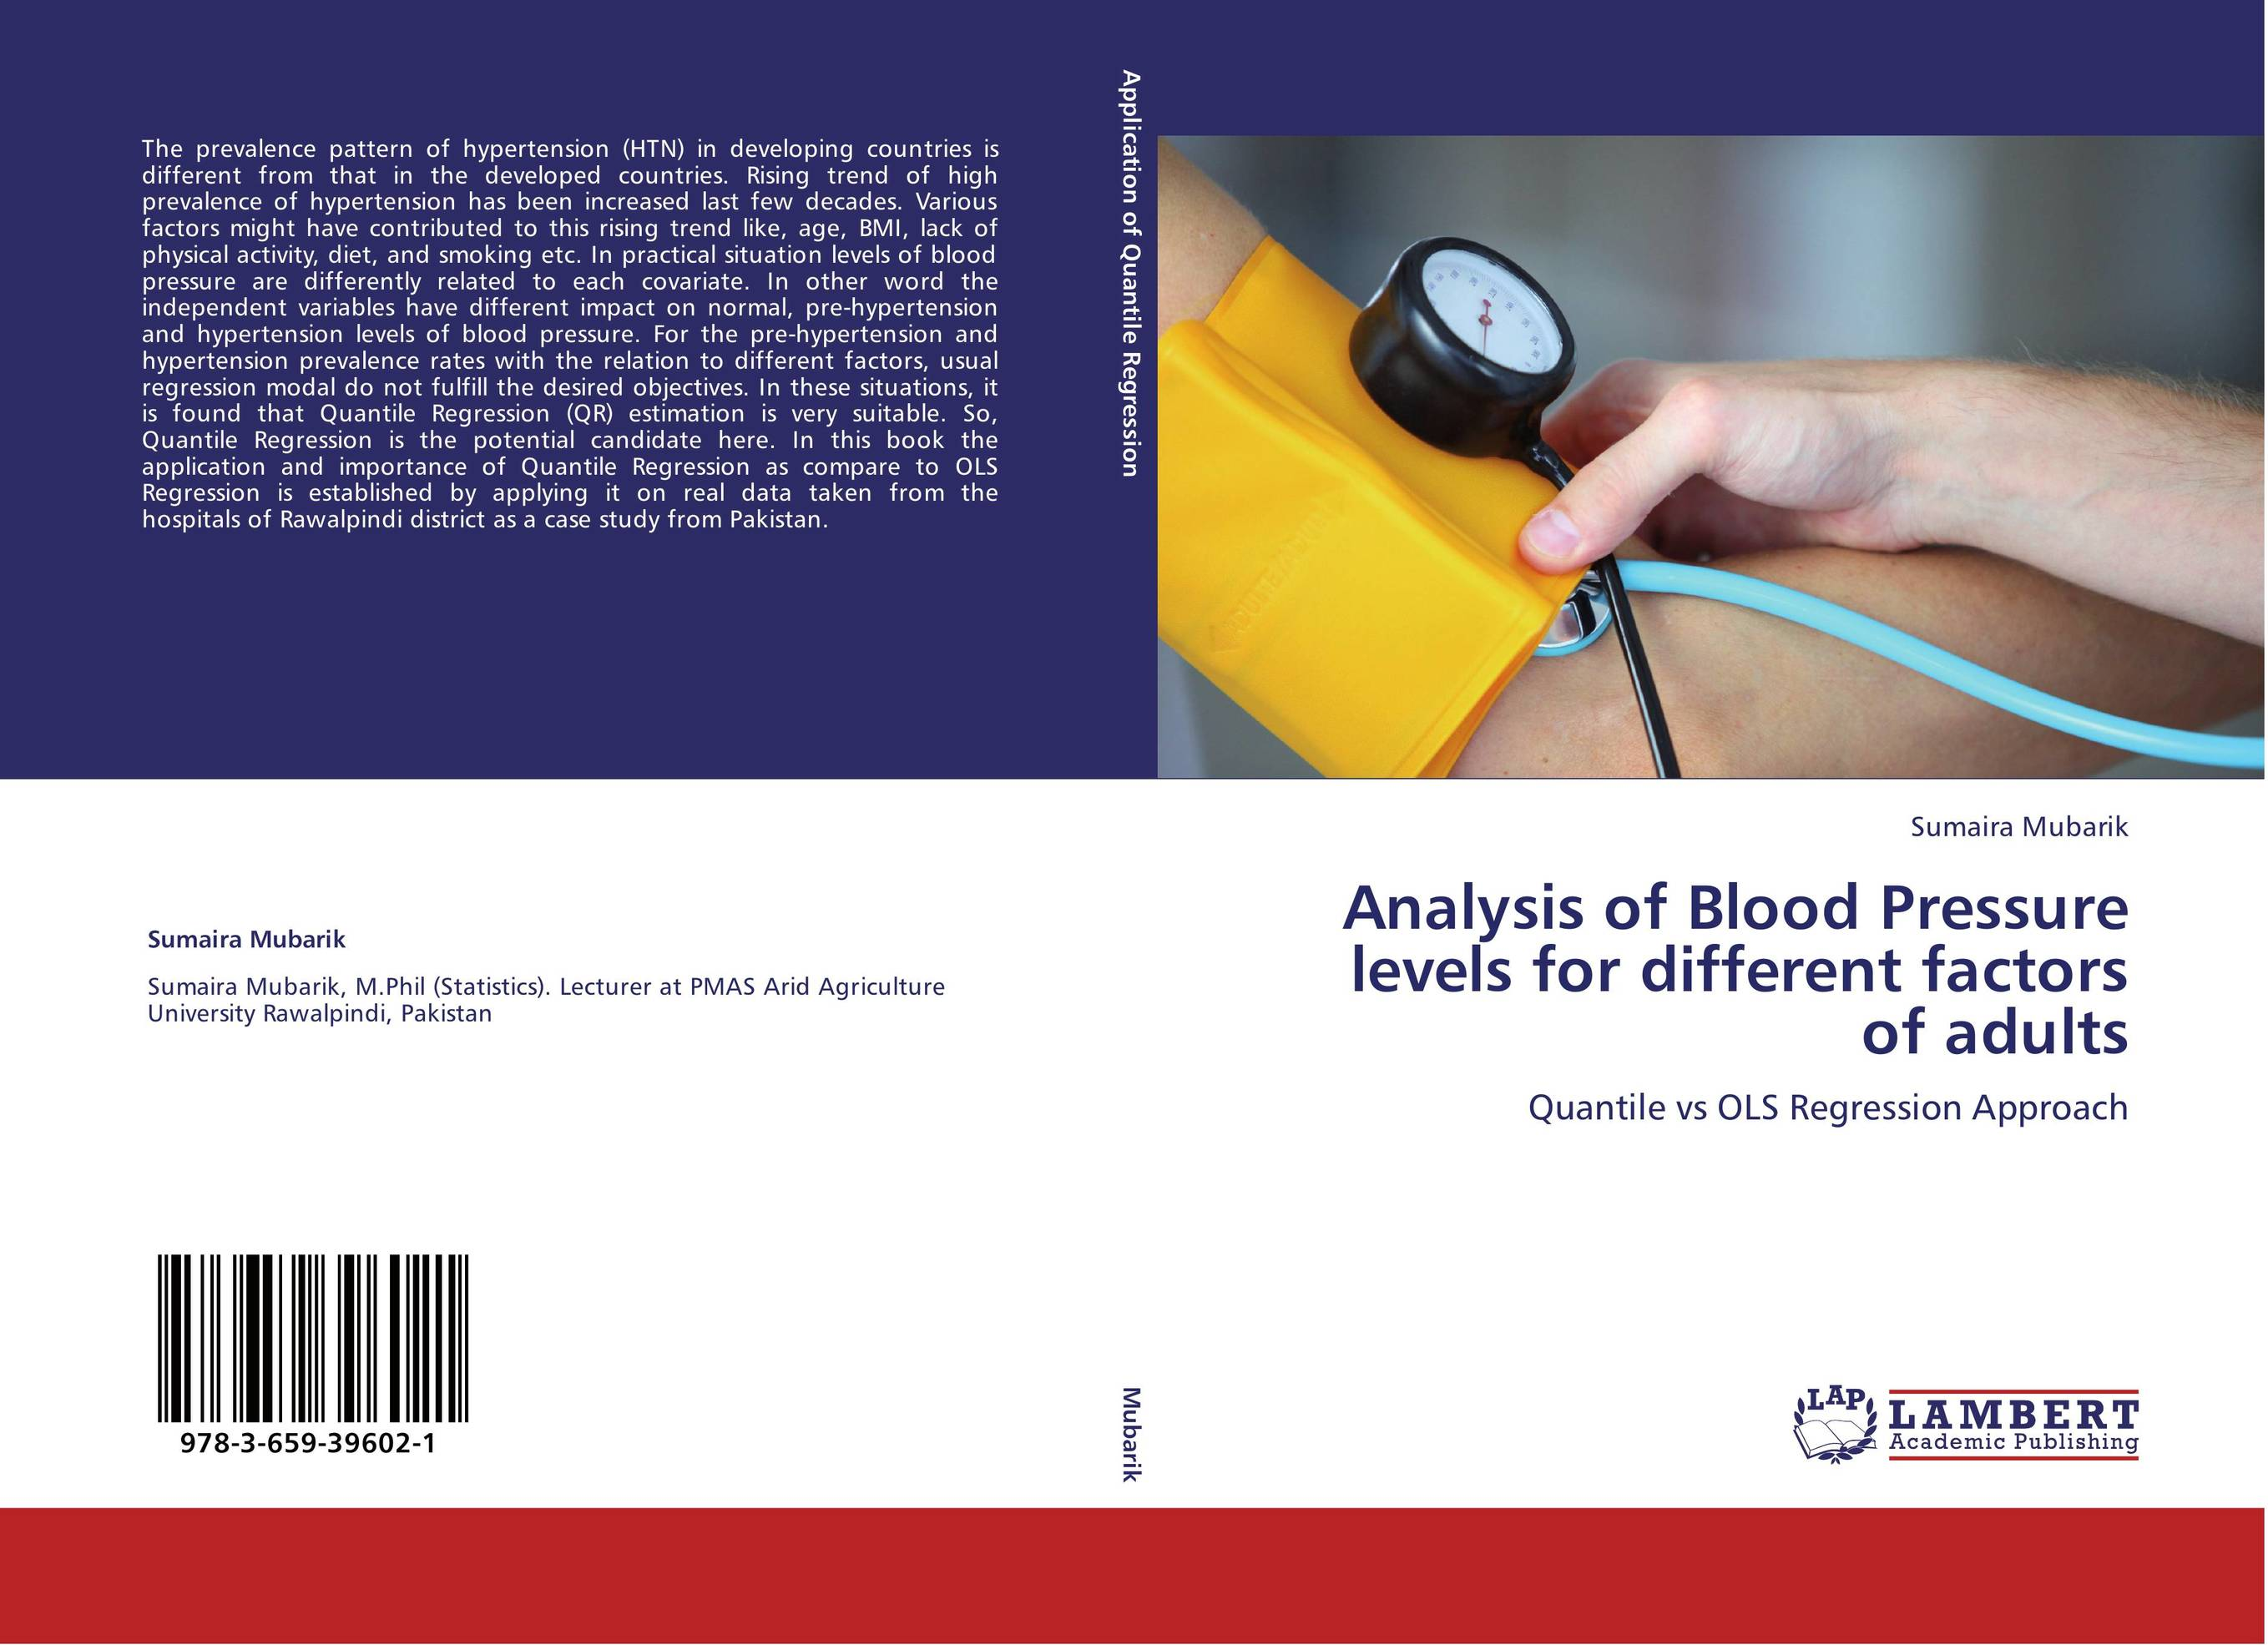 analysis of blood pressure Last updated on october 2nd, 2018 at 03:32 pm blood pressure is an important and vital health indicator high blood pressure (arterial hypertension) may cause changes to blood vessels, resulting in atherosclerosis, also known as hardening of the arteries.